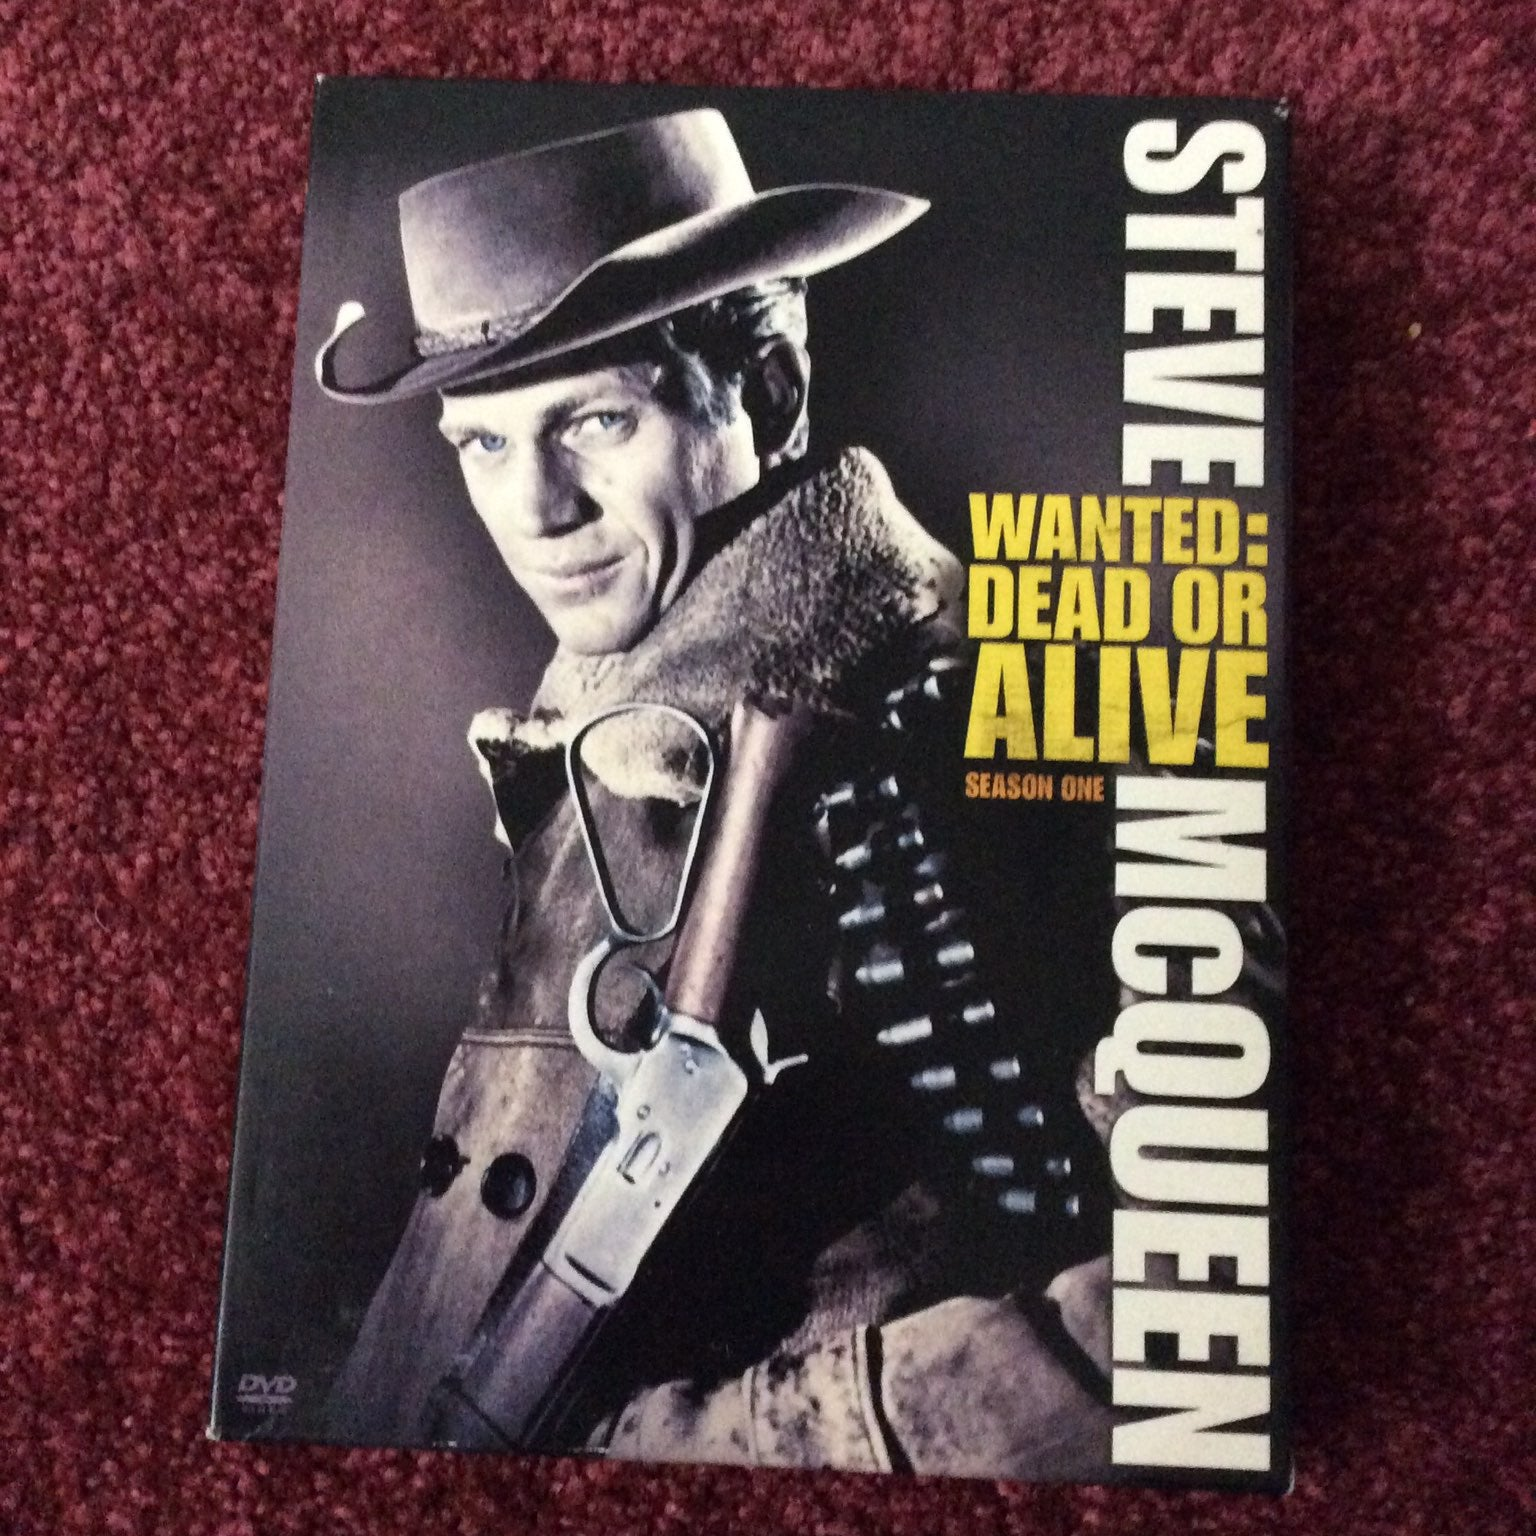 Wanted: Dead or Alive DVD